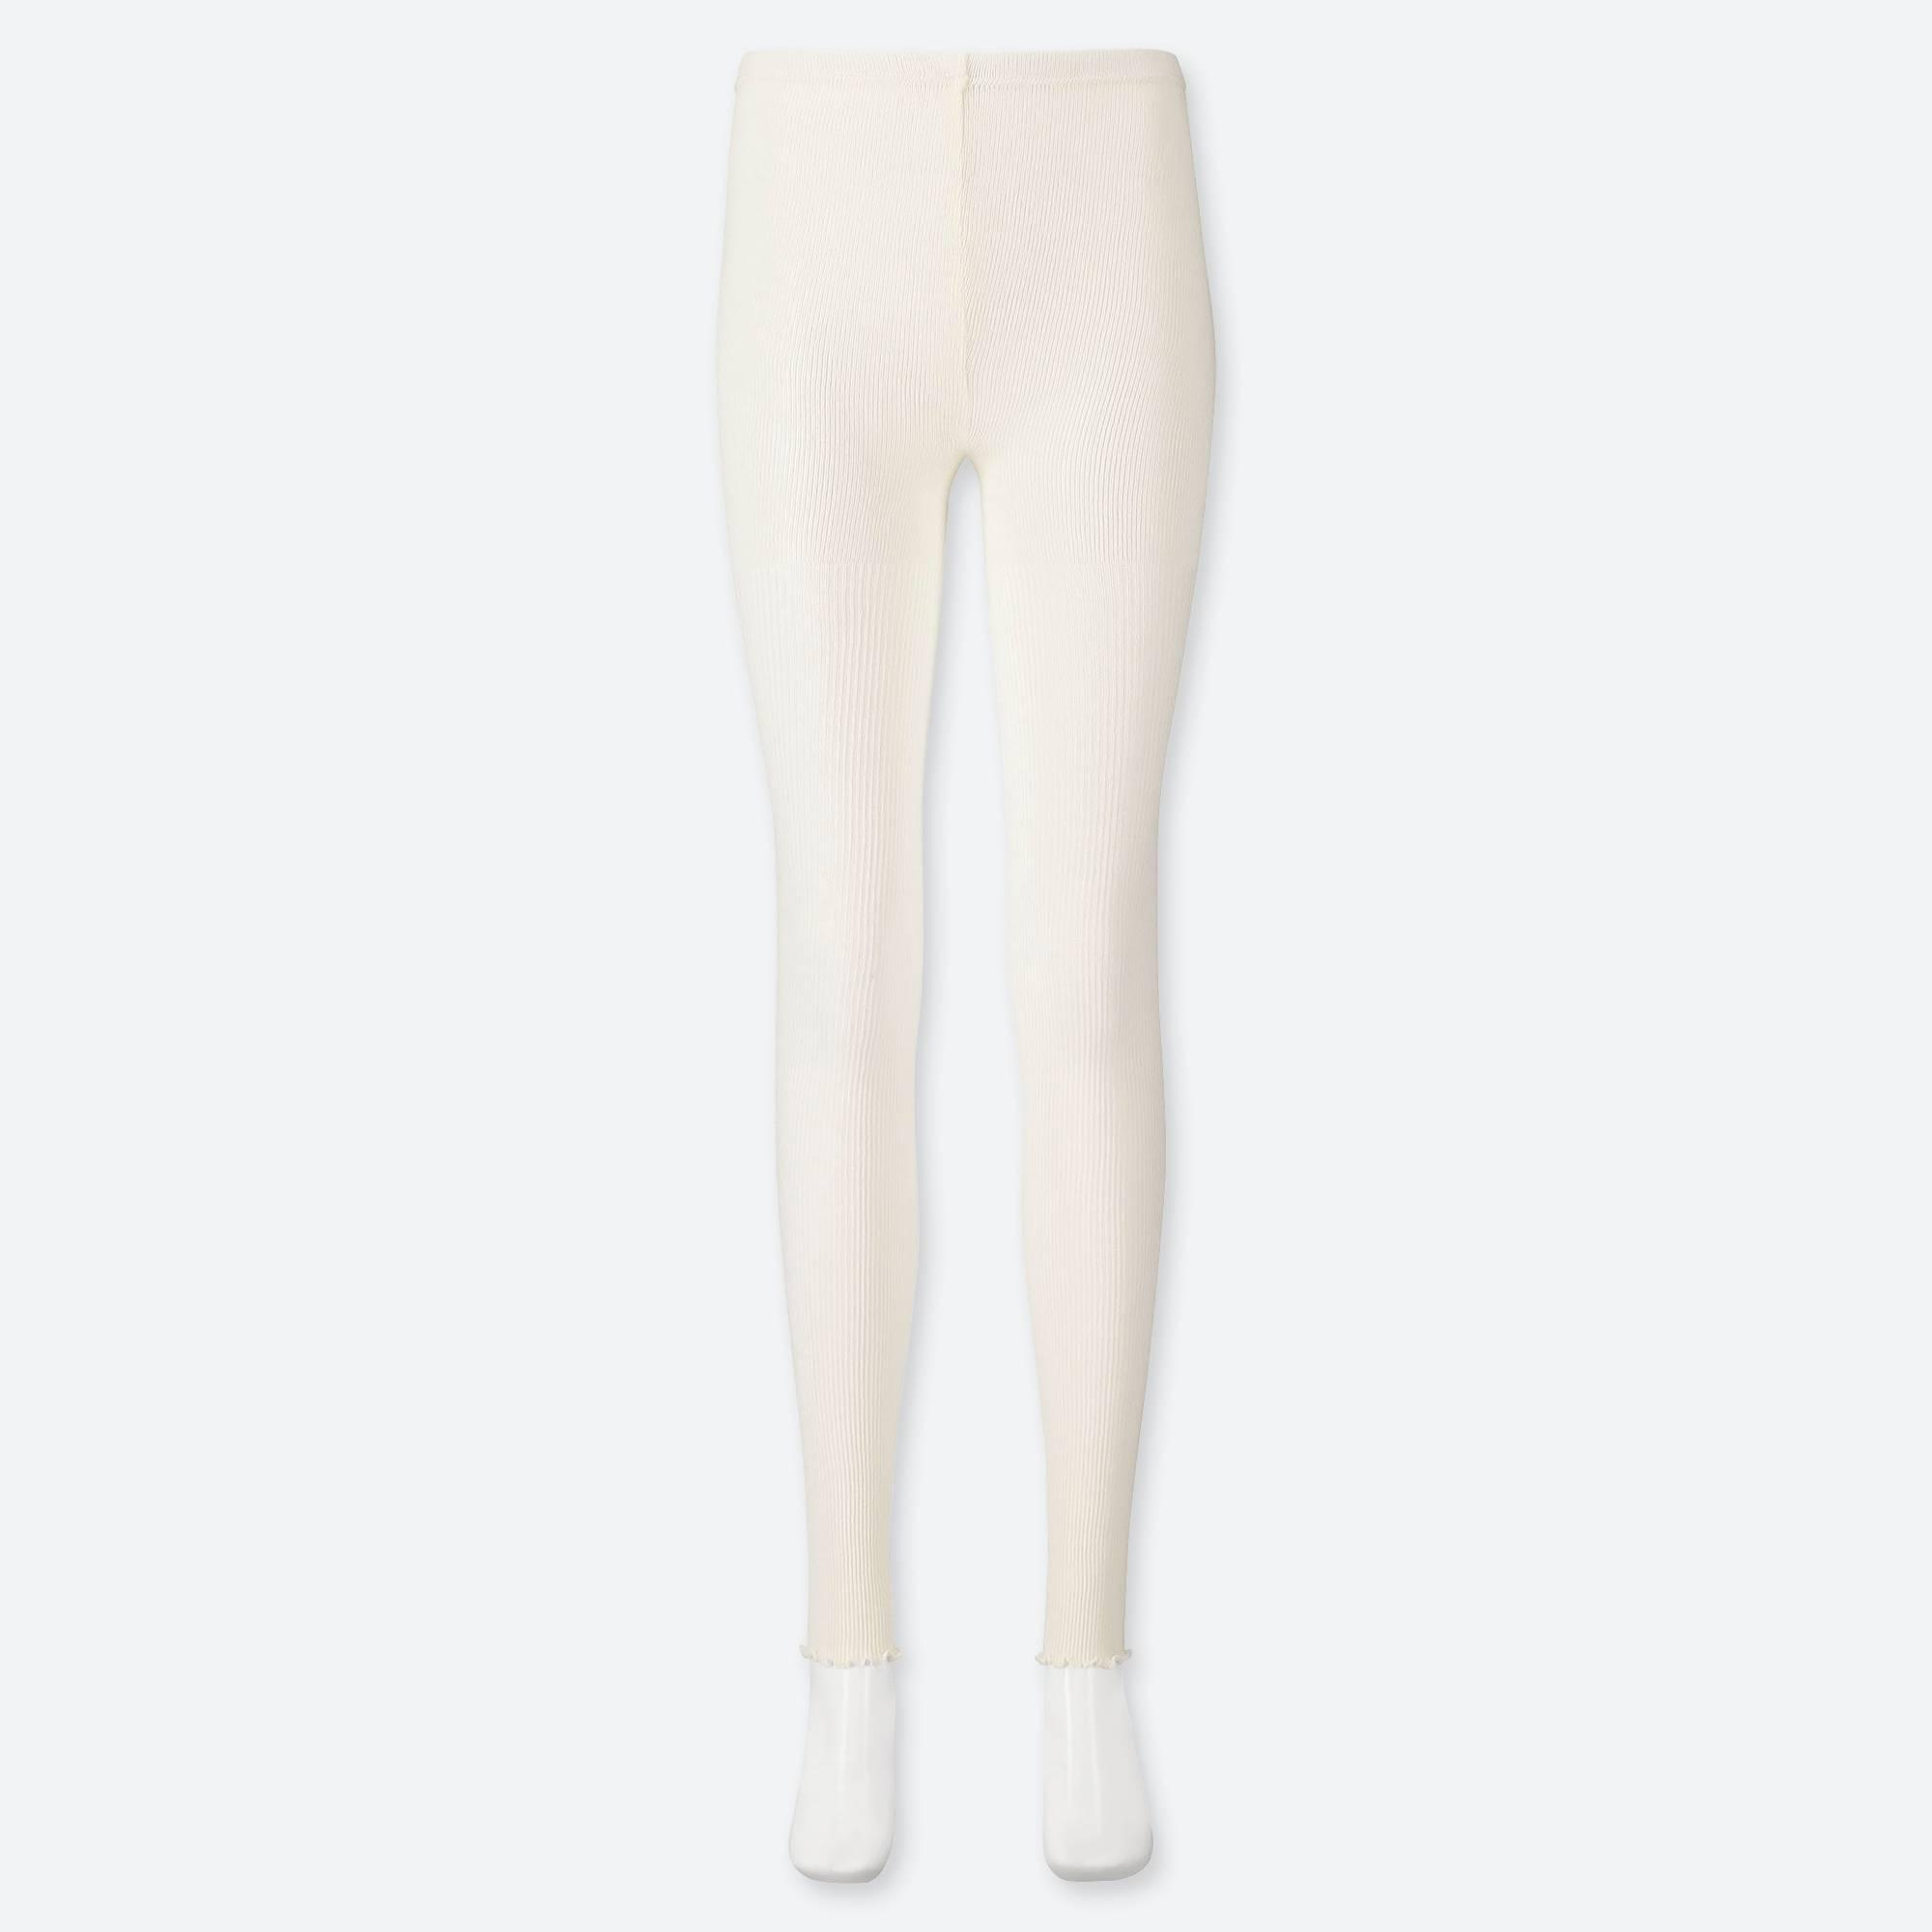 8098bbc40e85e White Women Ribbed Extended Length LEGGINGS